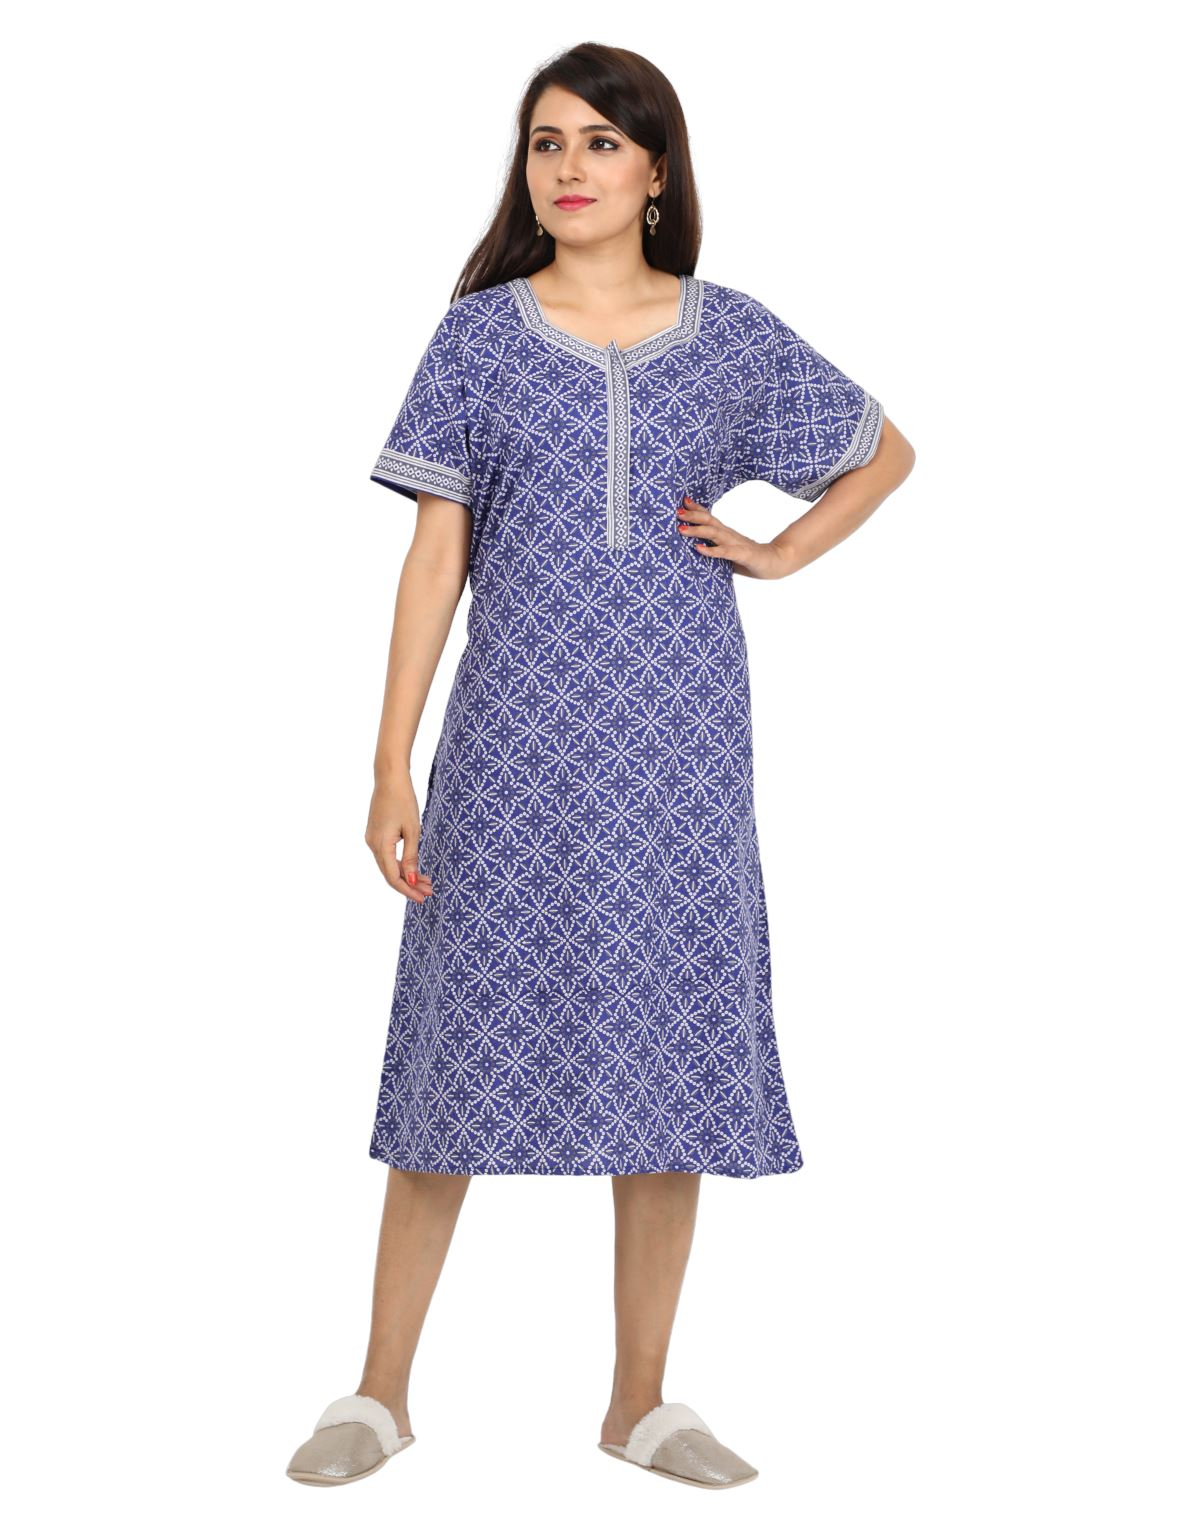 Womens Cotton Nightdress - Below Knee Length - Front Zip - Slim Fit Womens Nightgown NH - Nighty House